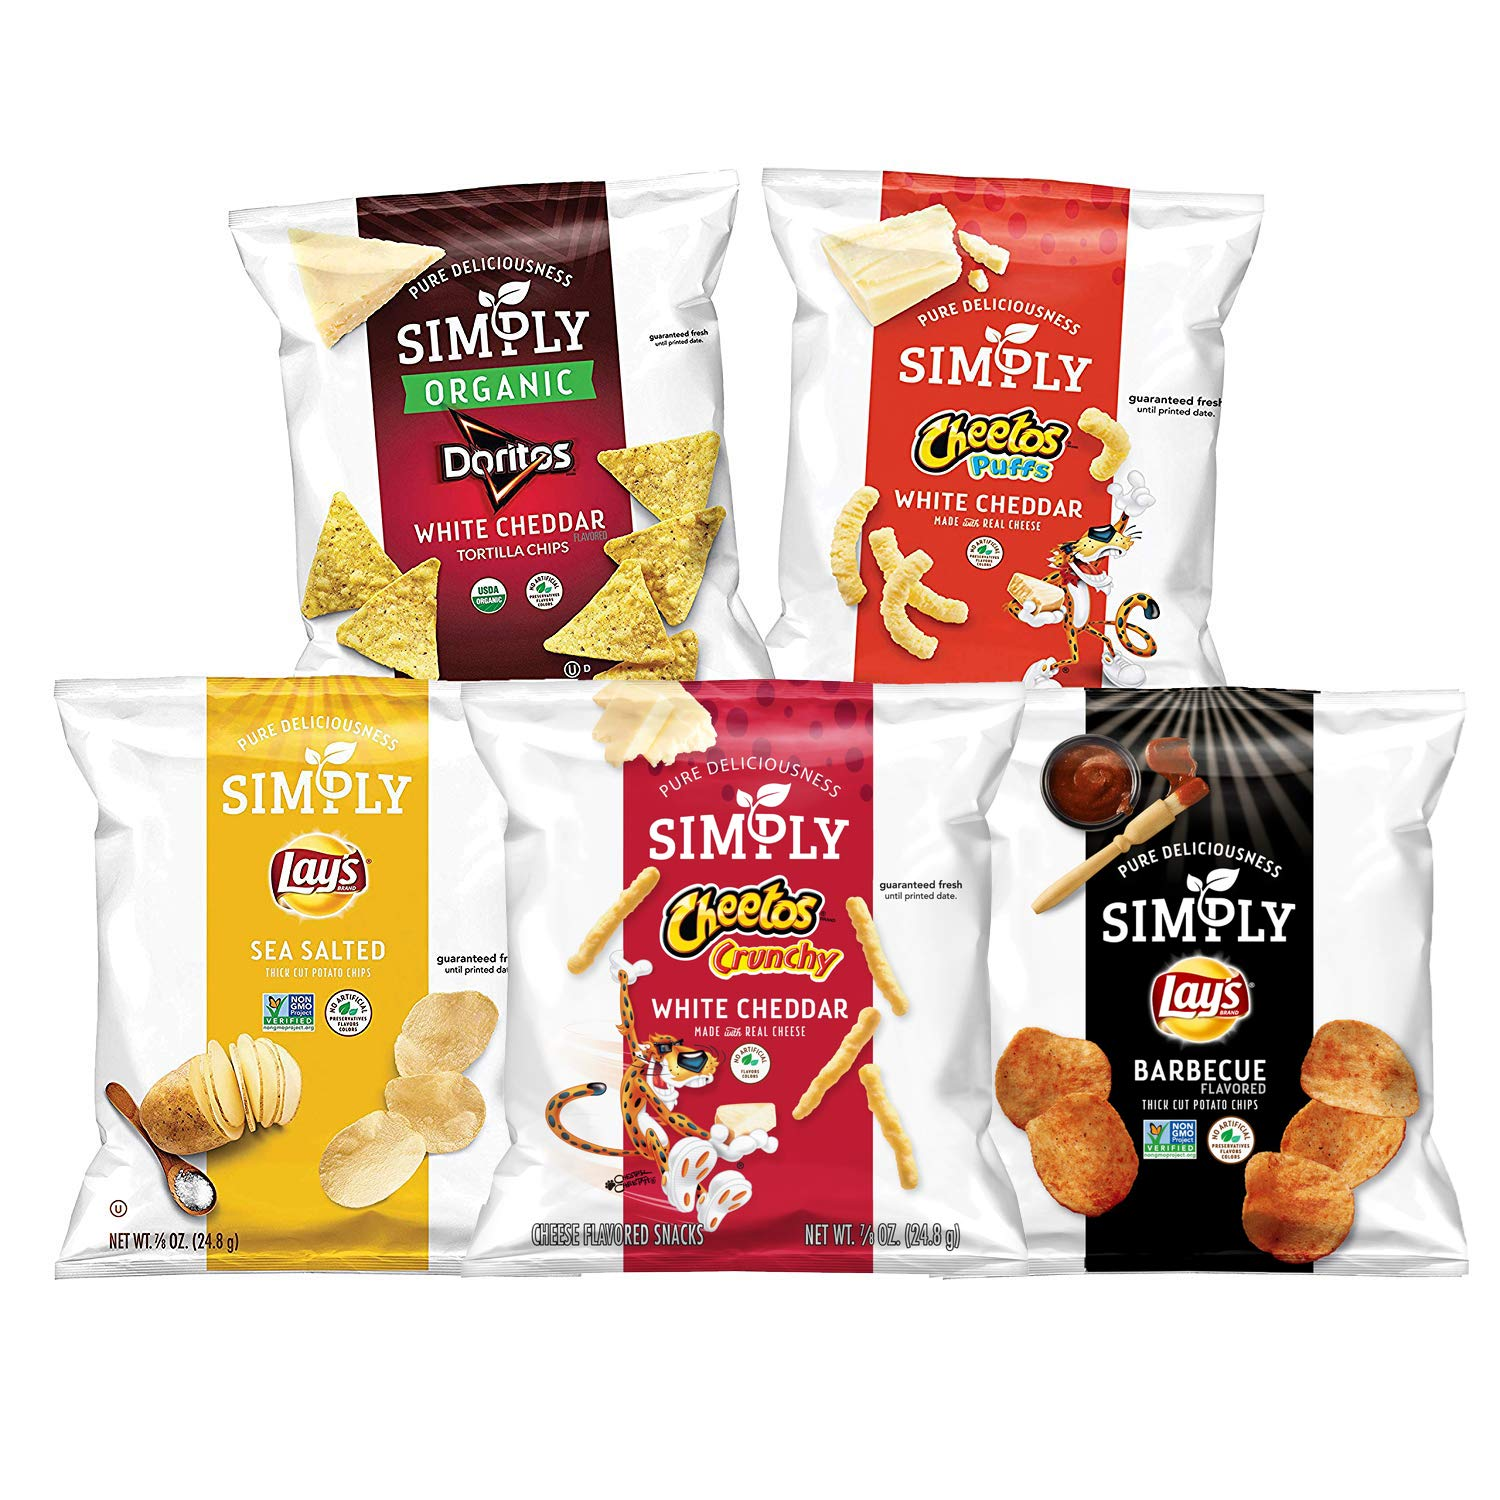 Simply Brand Organic Doritos Tortilla Chips, Cheetos Puffs, 36 Count by Simply